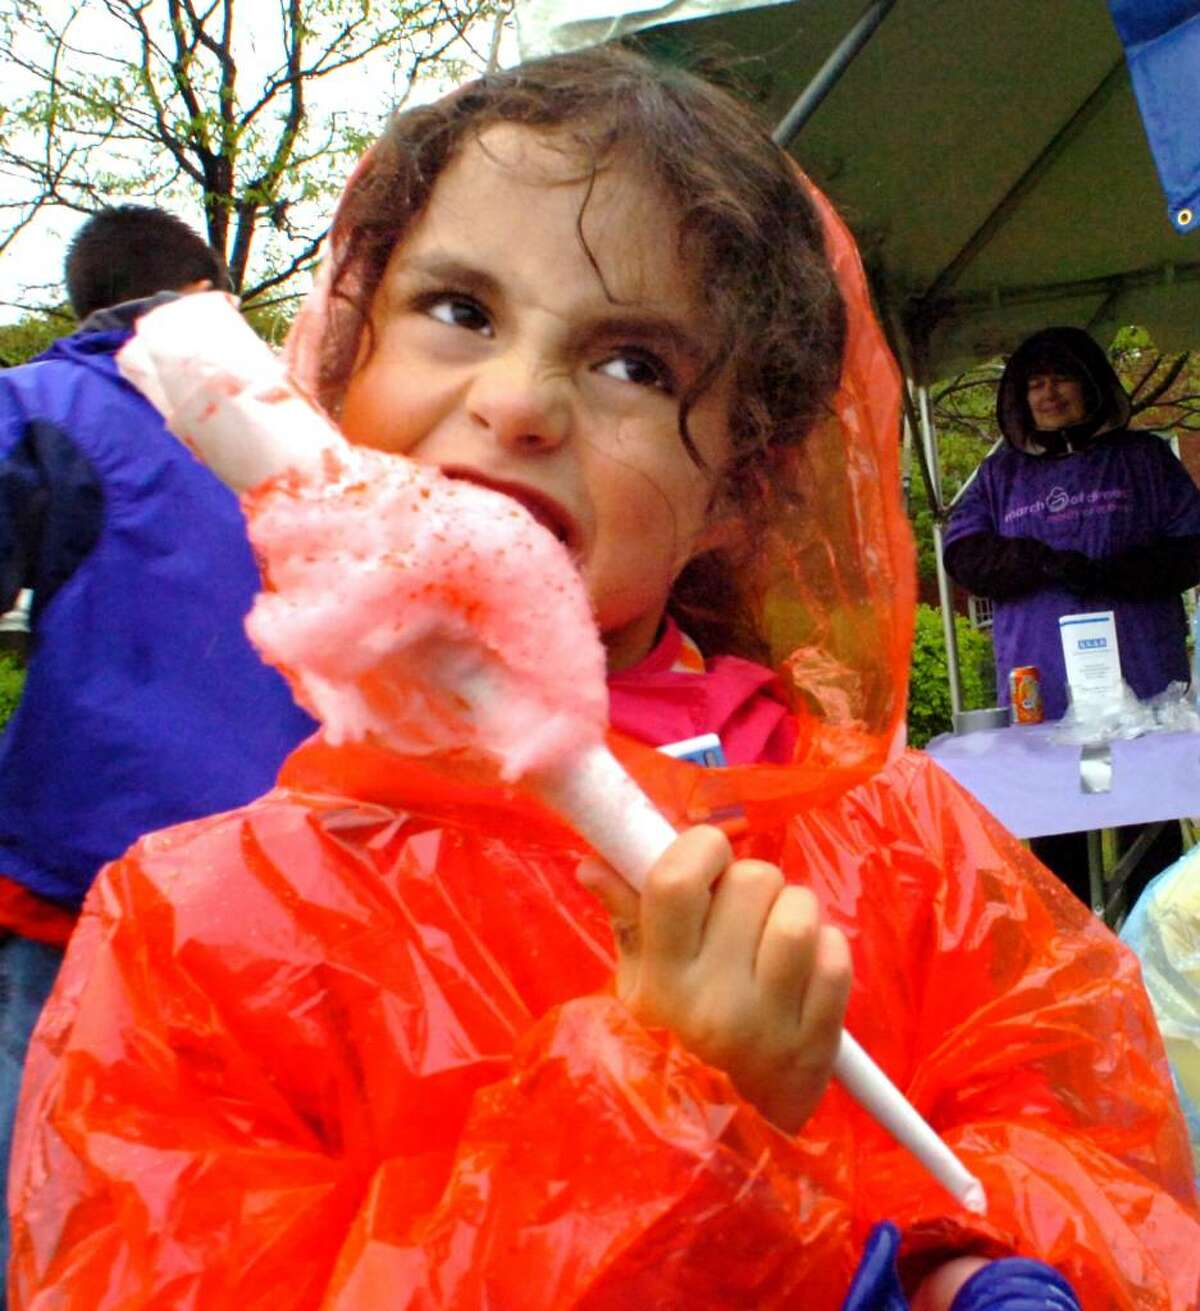 Eliza Roth, 6, of Newtown, digs into her cotton candy during the March of Dimes annual March for Babies at the City Center Green in Danbury on Sunday, April 25, 2010.